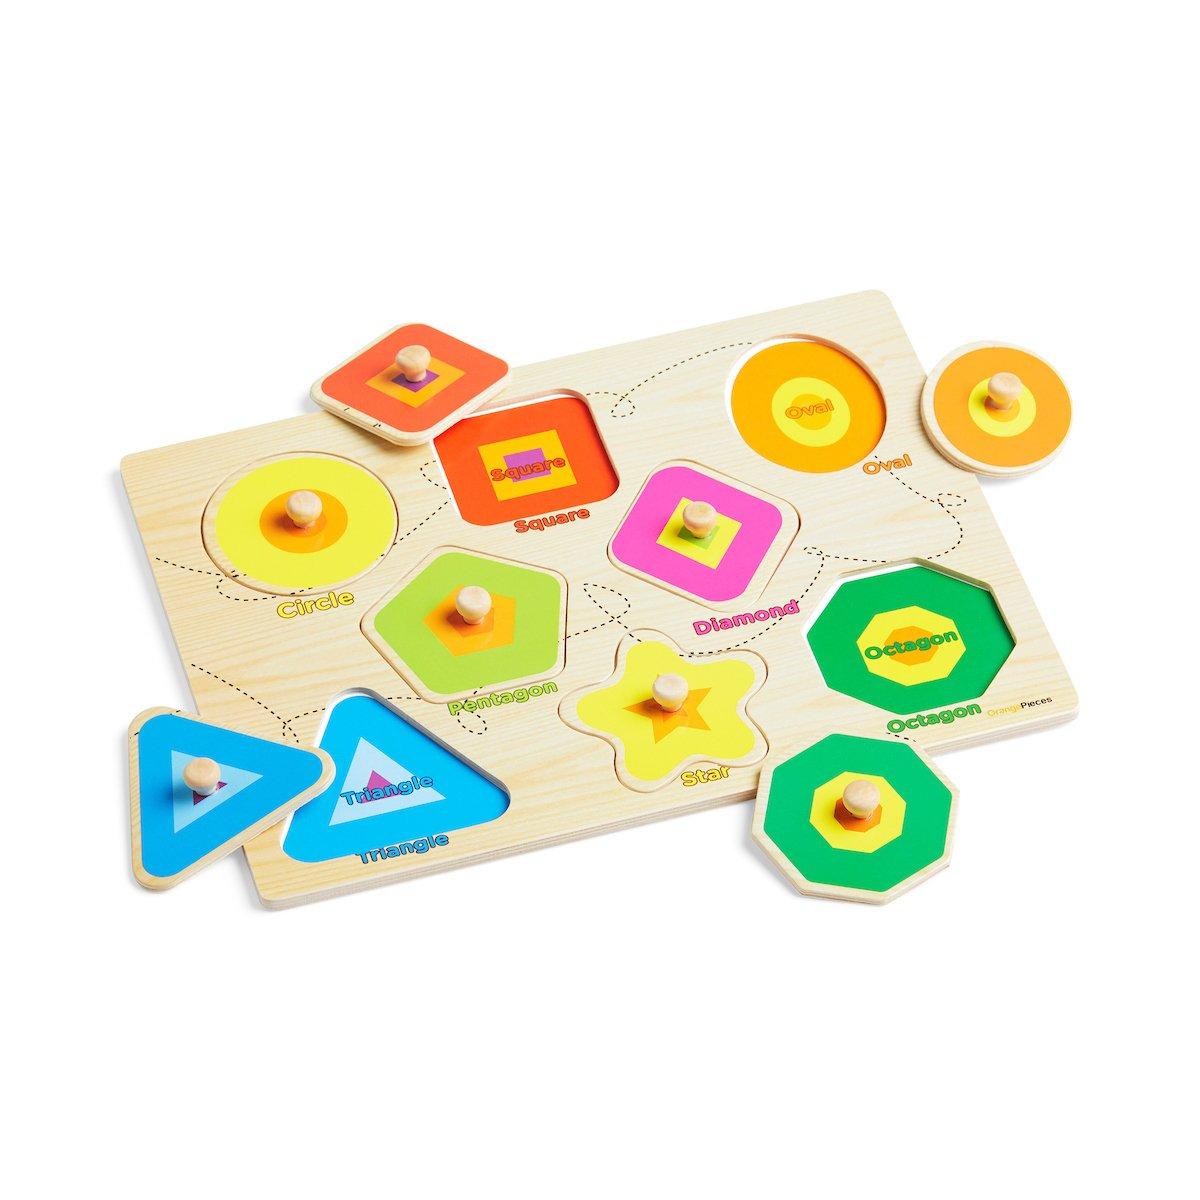 Wooden Peg Puzzle for toddlers - 3 Piece puzzle set for kids - Alphabet ABC, Numbers and Shapes Toy - Perfect pegged puzzles for kid learning letters, number, shape board puzzles for toddler ages 3+ by Orange Pieces (Image #8)